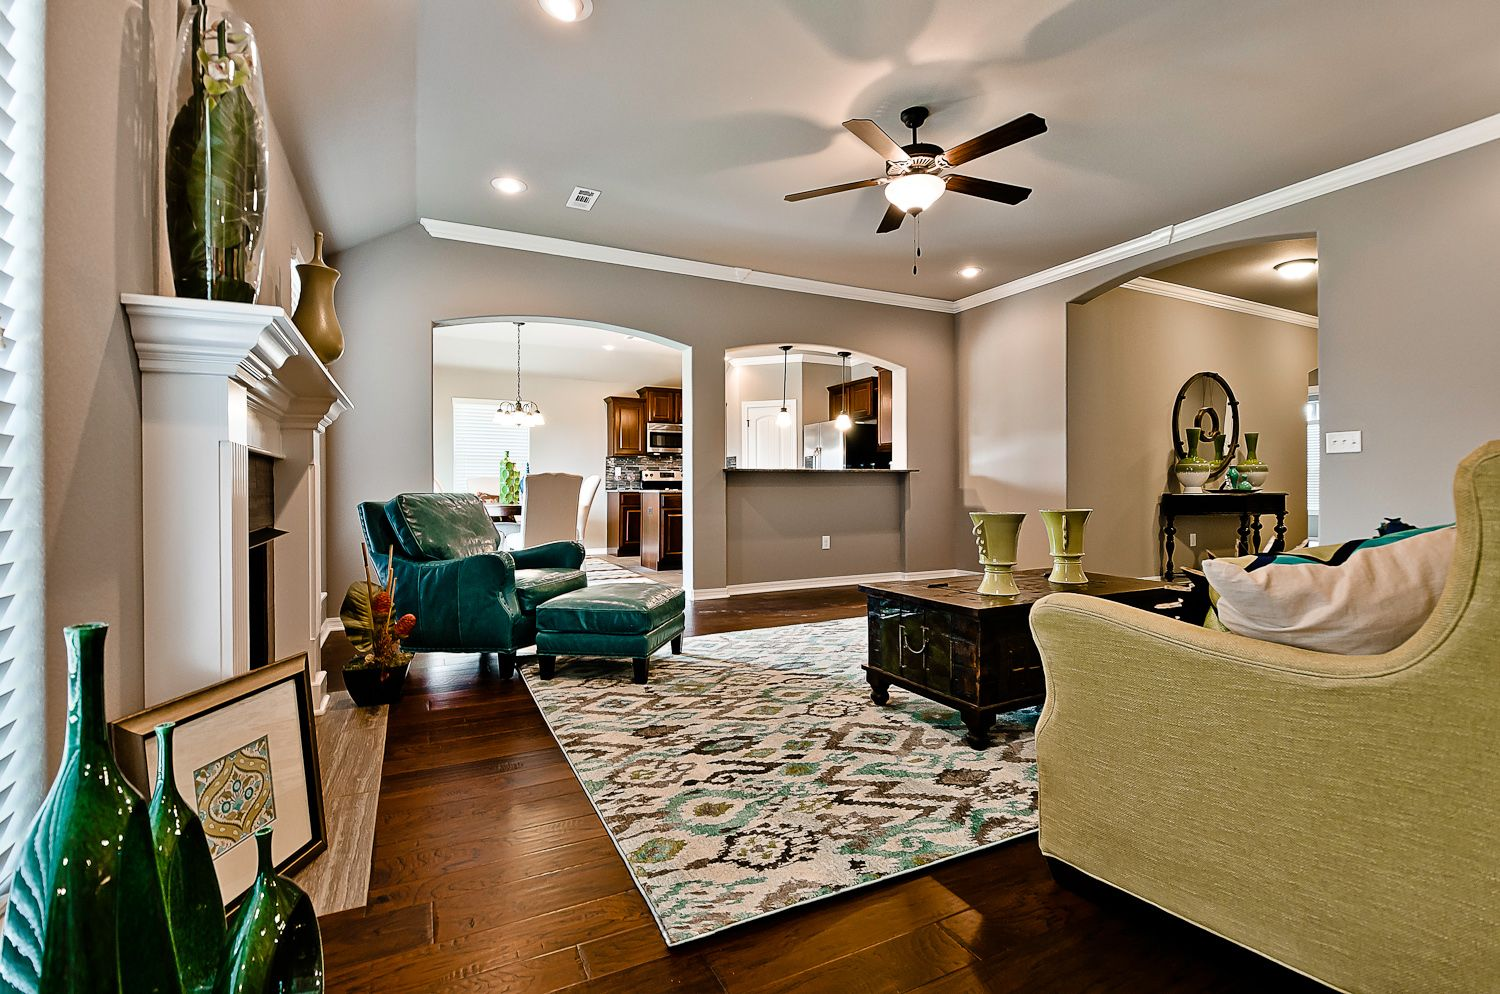 Living Area featured in the Magnolia 1556 By Riverwood Homes - Arkansas in Fayetteville, AR